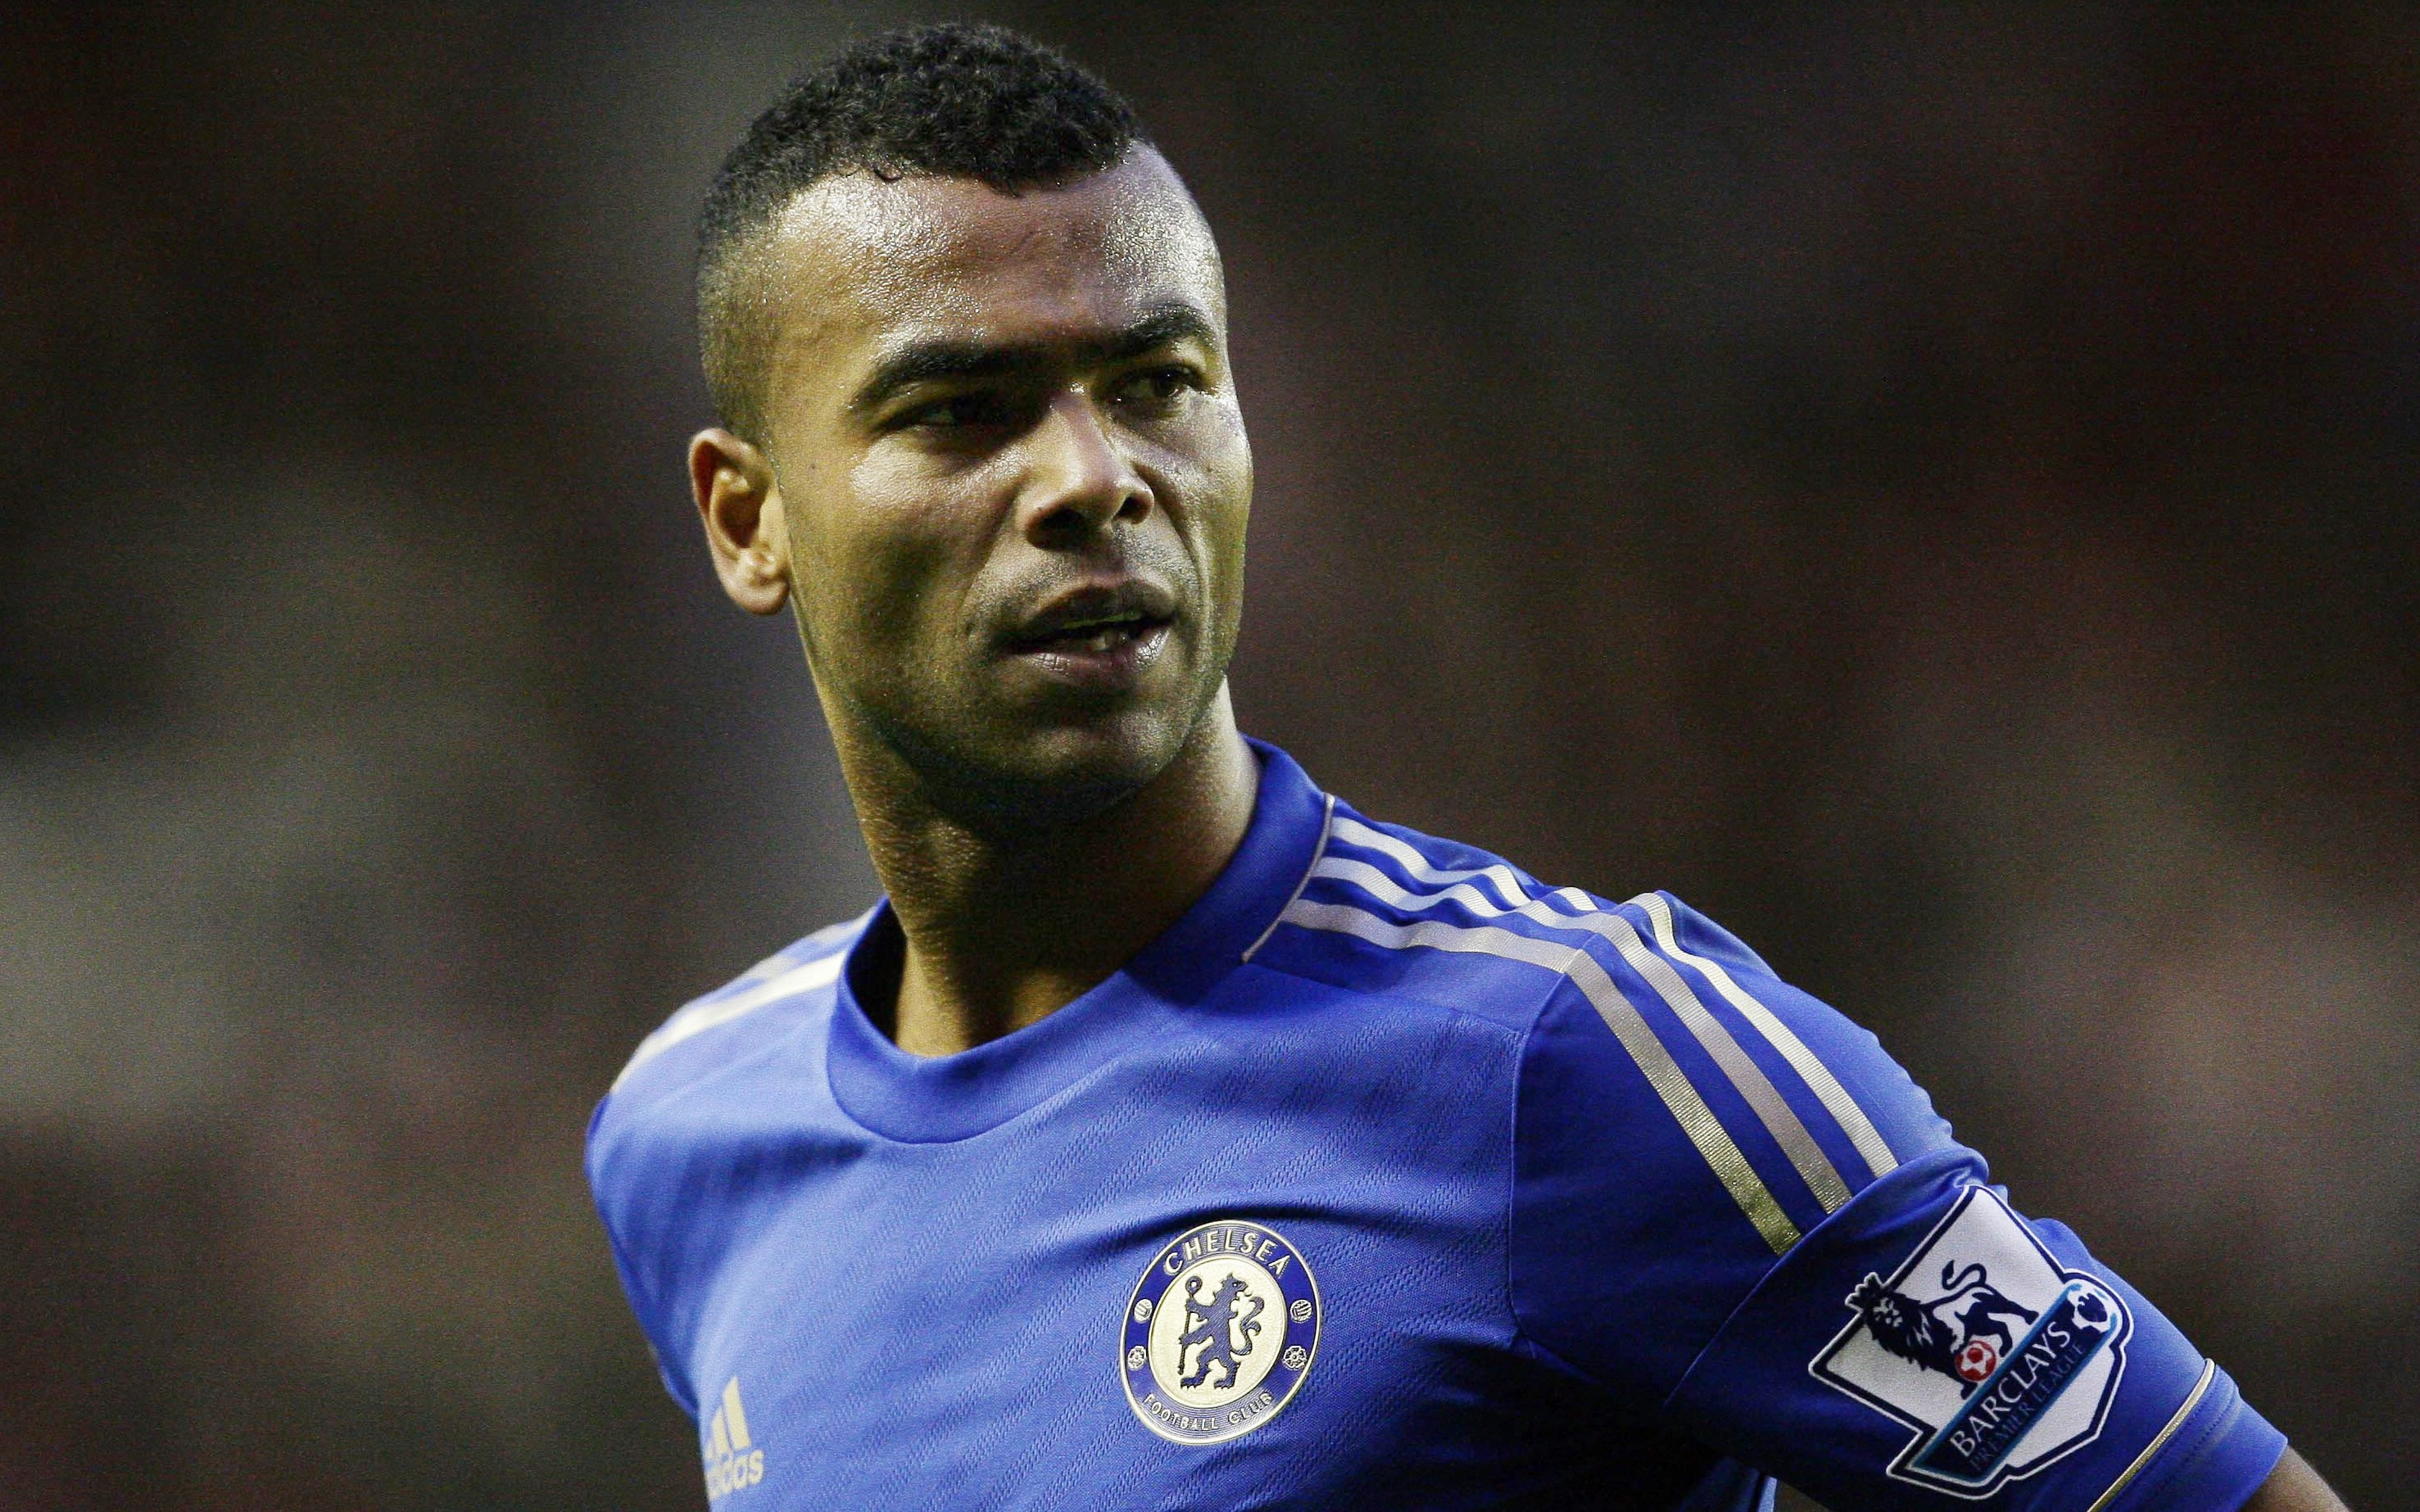 Ashley Cole turns waiter for his team-mates after losing bowling challenge